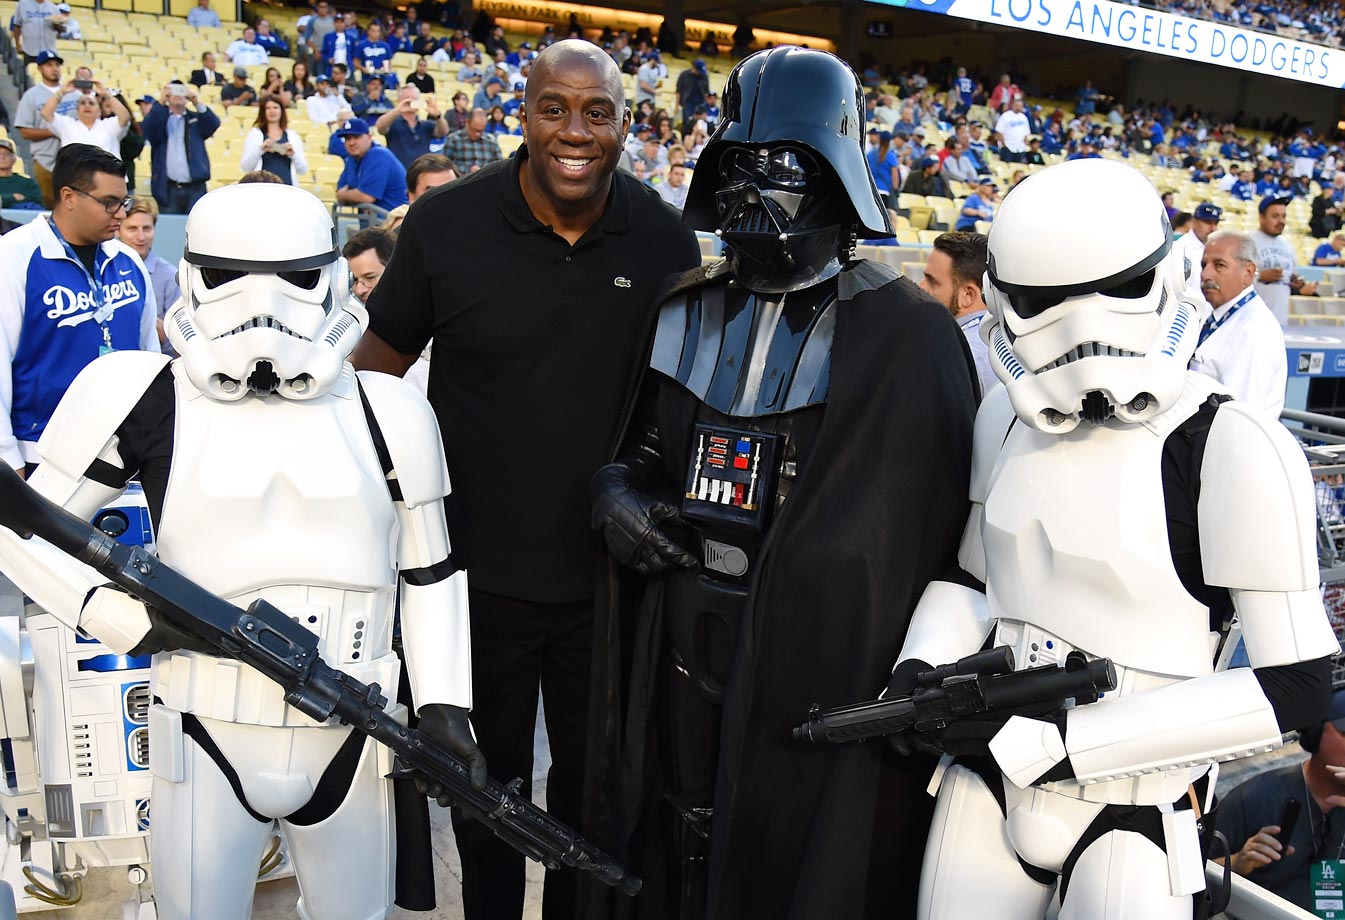 Magic Johnson poses with Darth Vader and stormtroopers before the Los Angeles Dodgers game against the Seattle Mariners on April 14, 2015 at Dodger Stadium in Los Angeles.